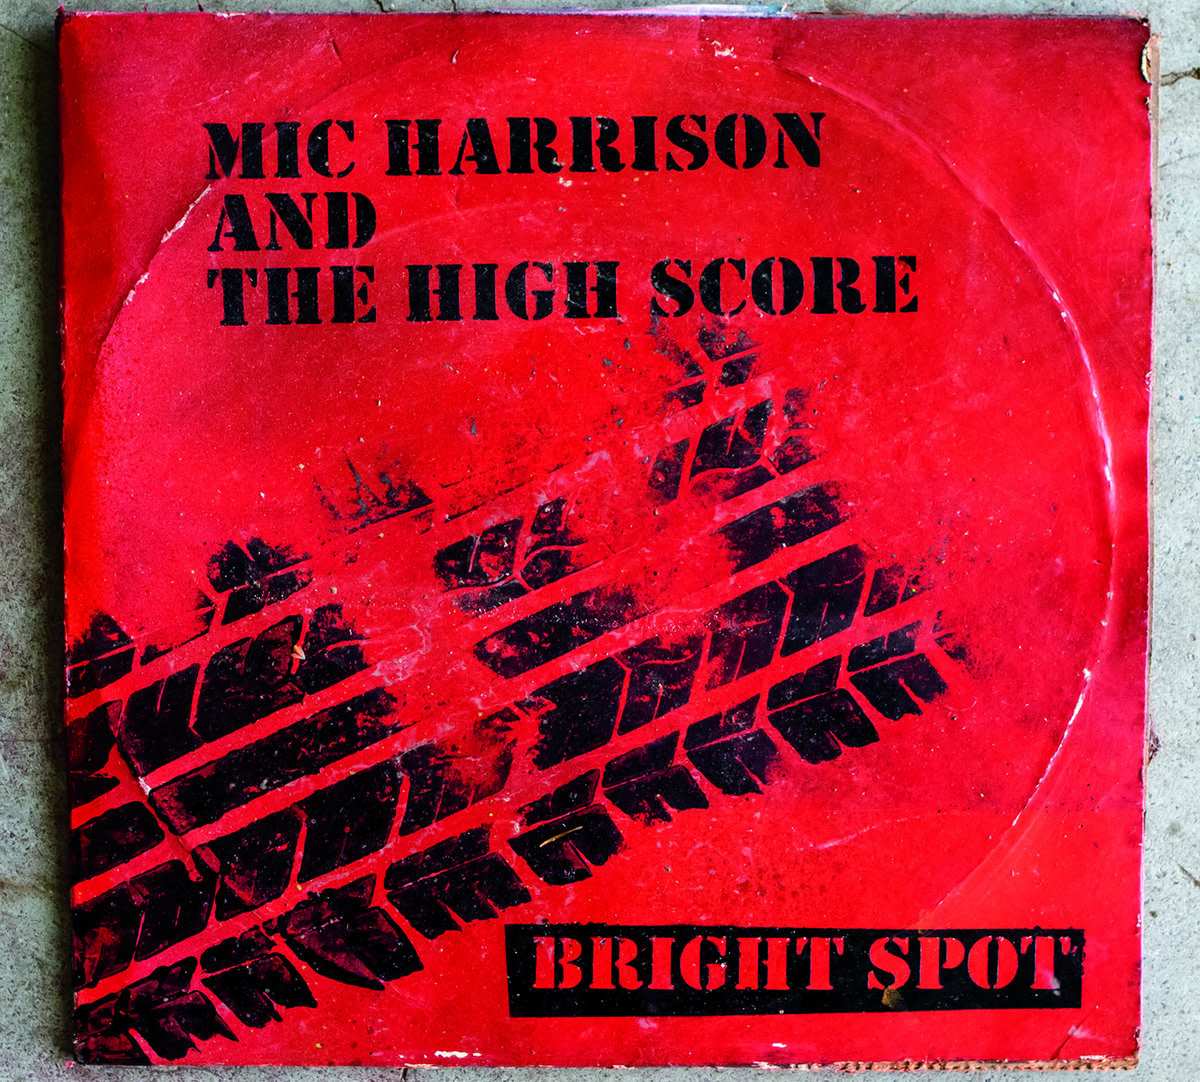 Mic Harrison and the High Score